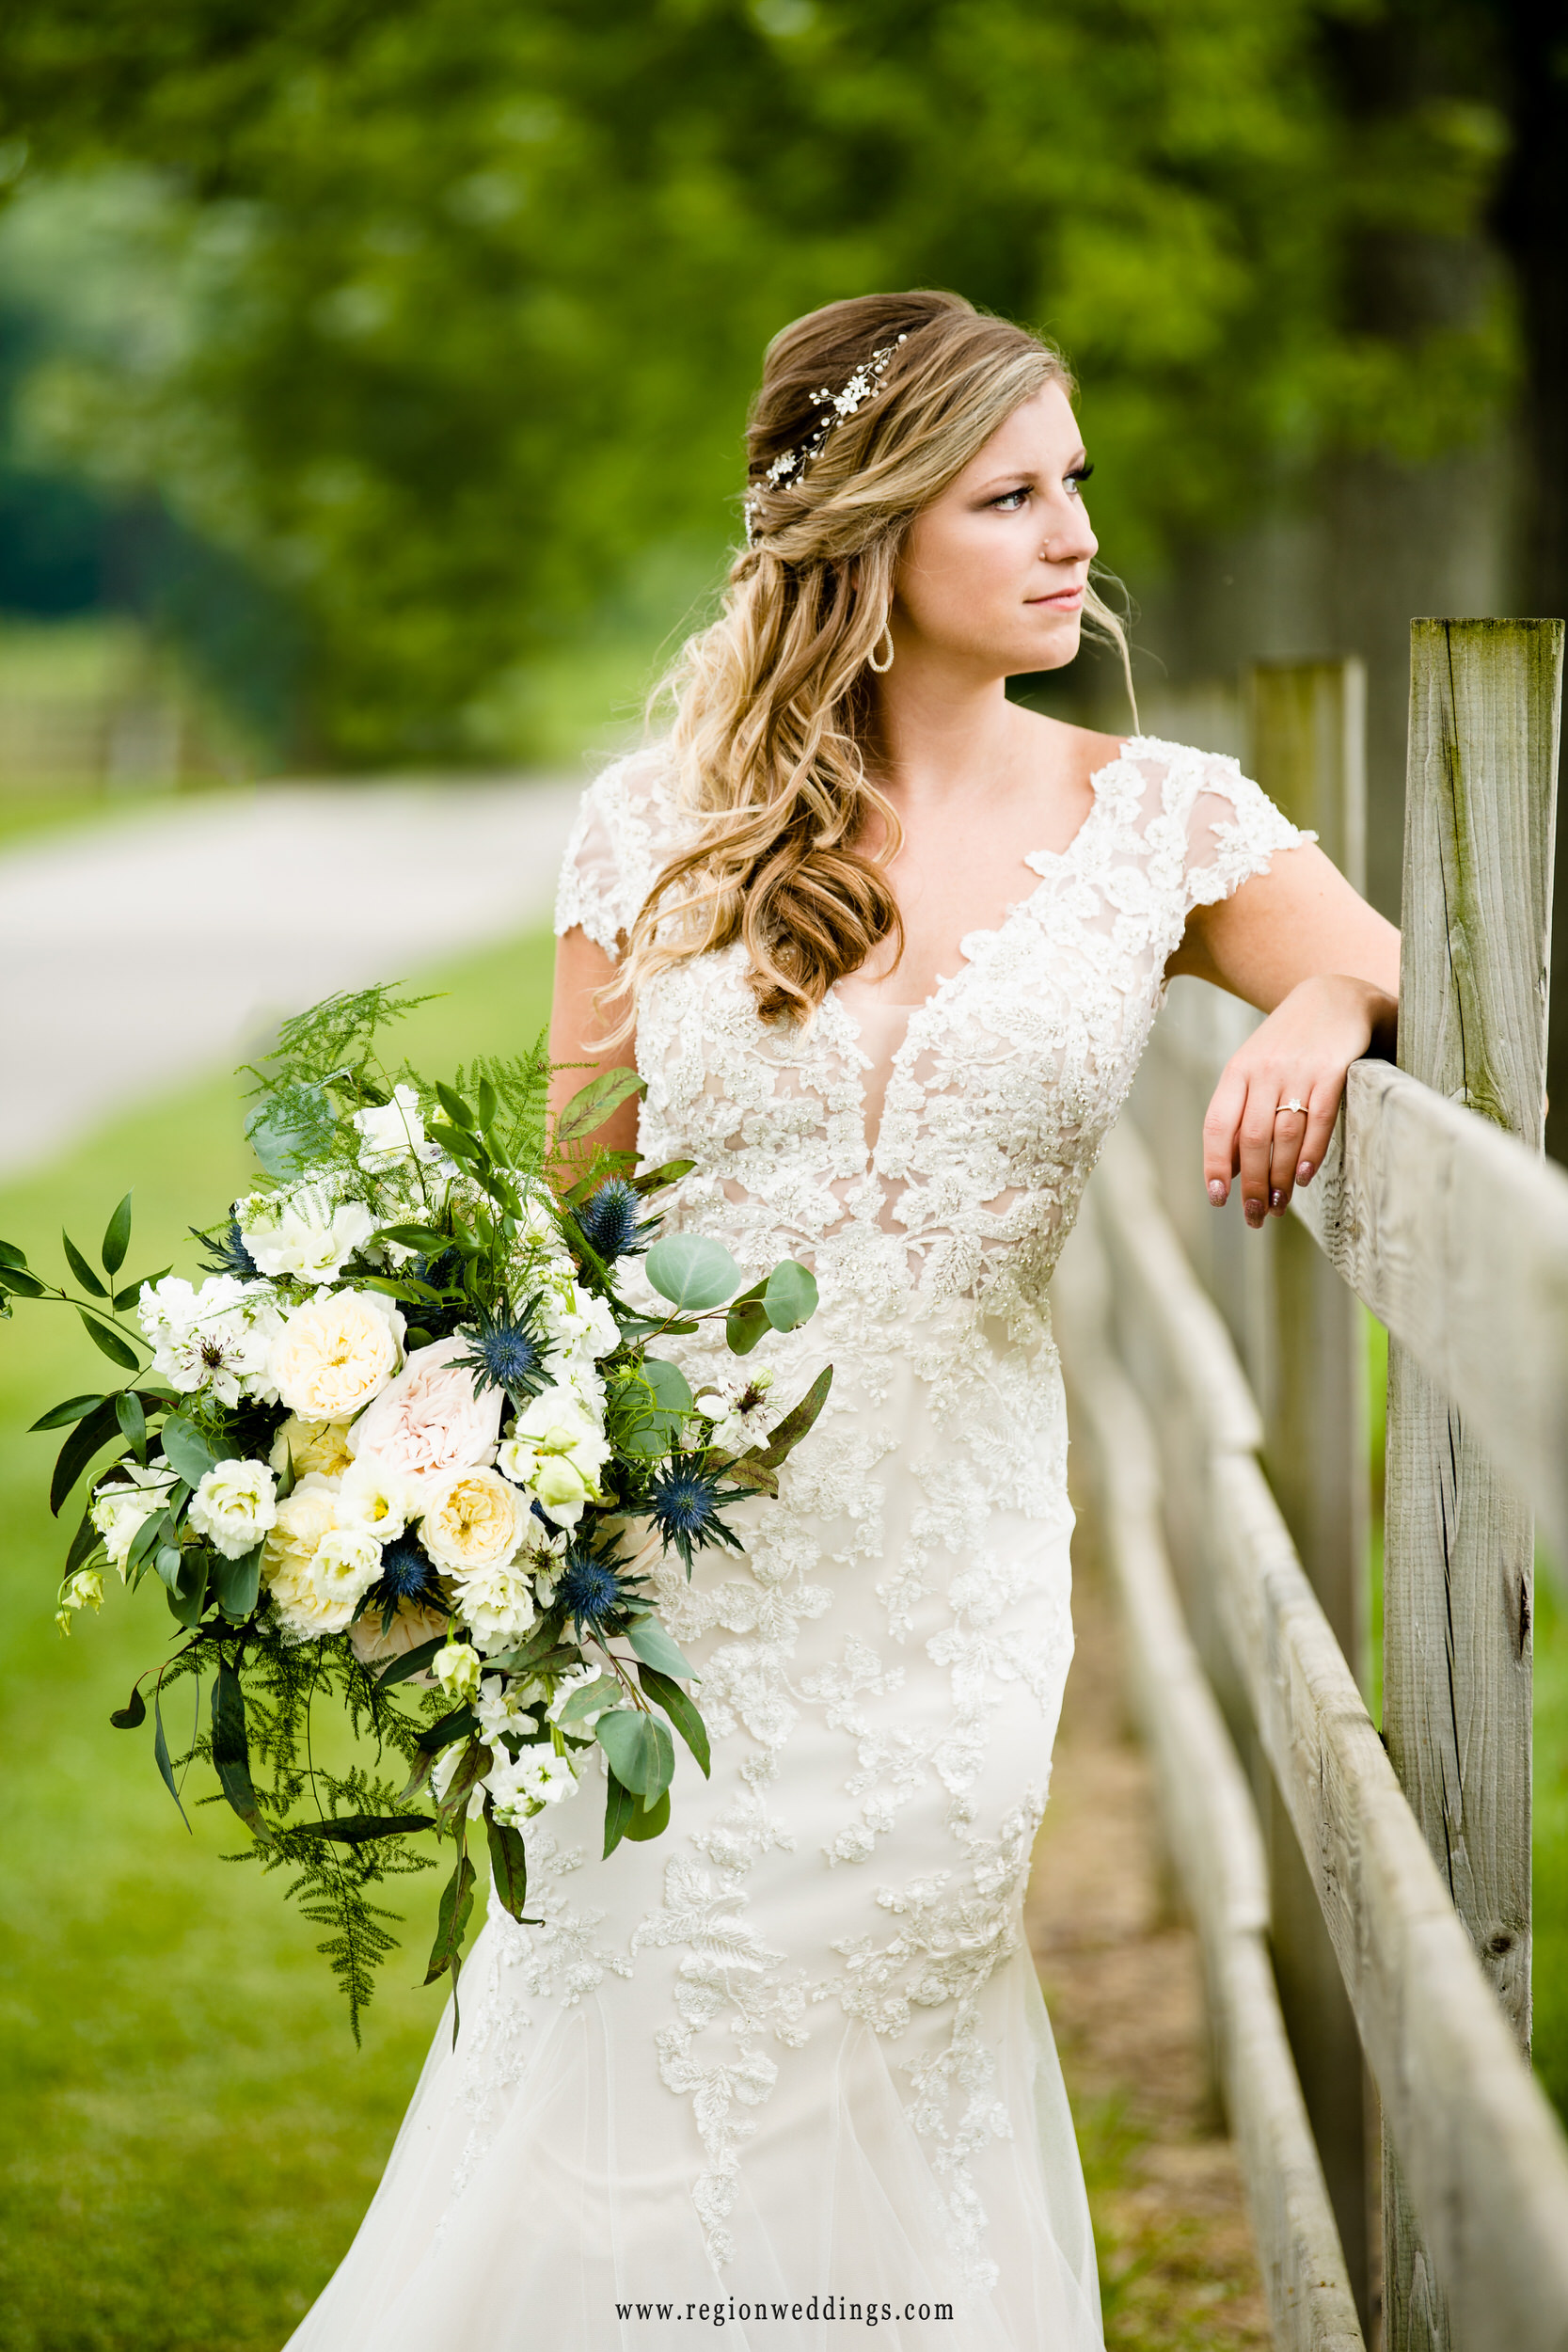 The bride leans against a rustic fence on the grounds at County Line Orchard.